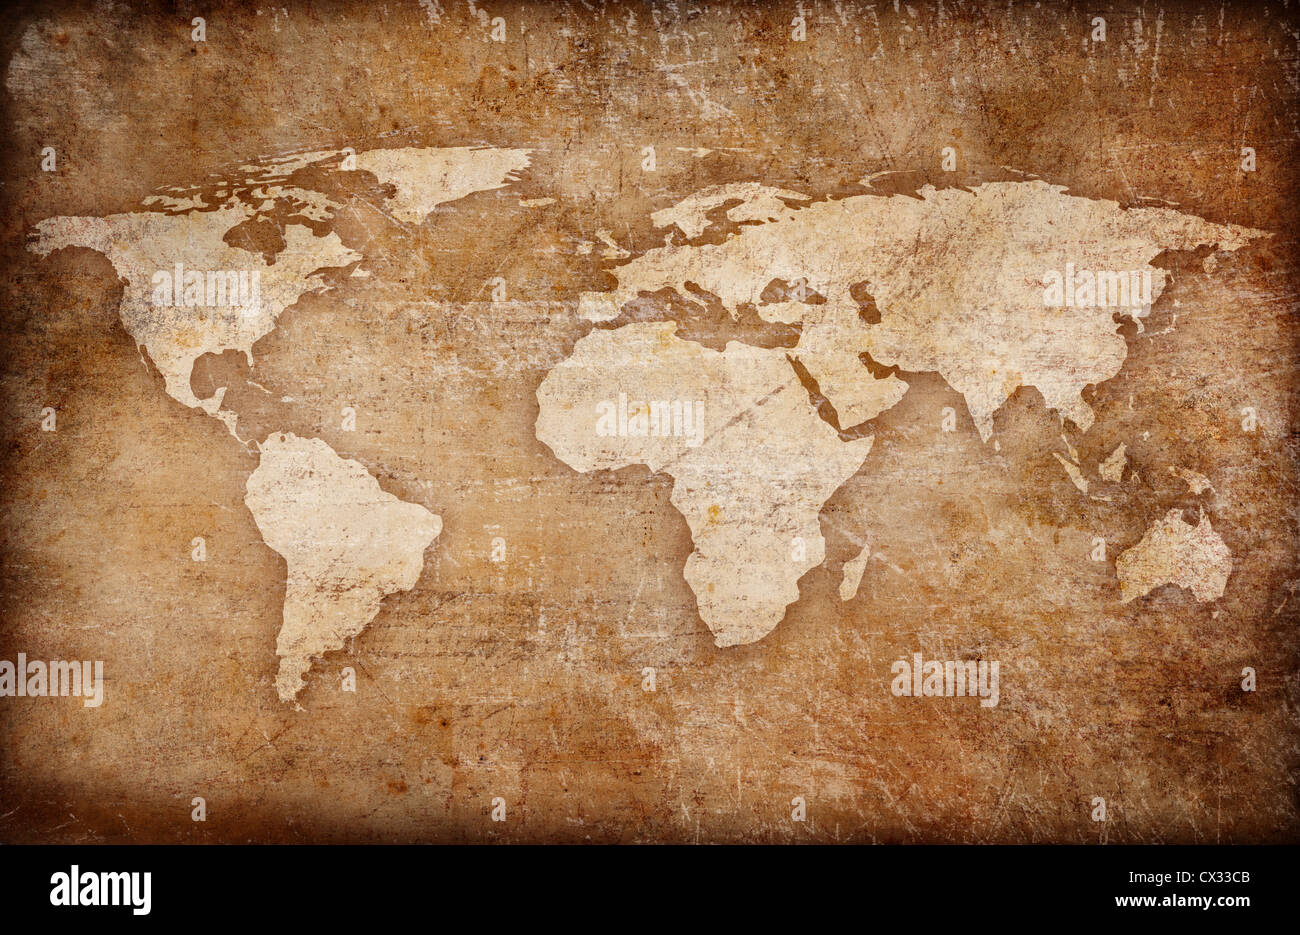 Grunge world map background stock photo royalty free image grunge world map background gumiabroncs Gallery